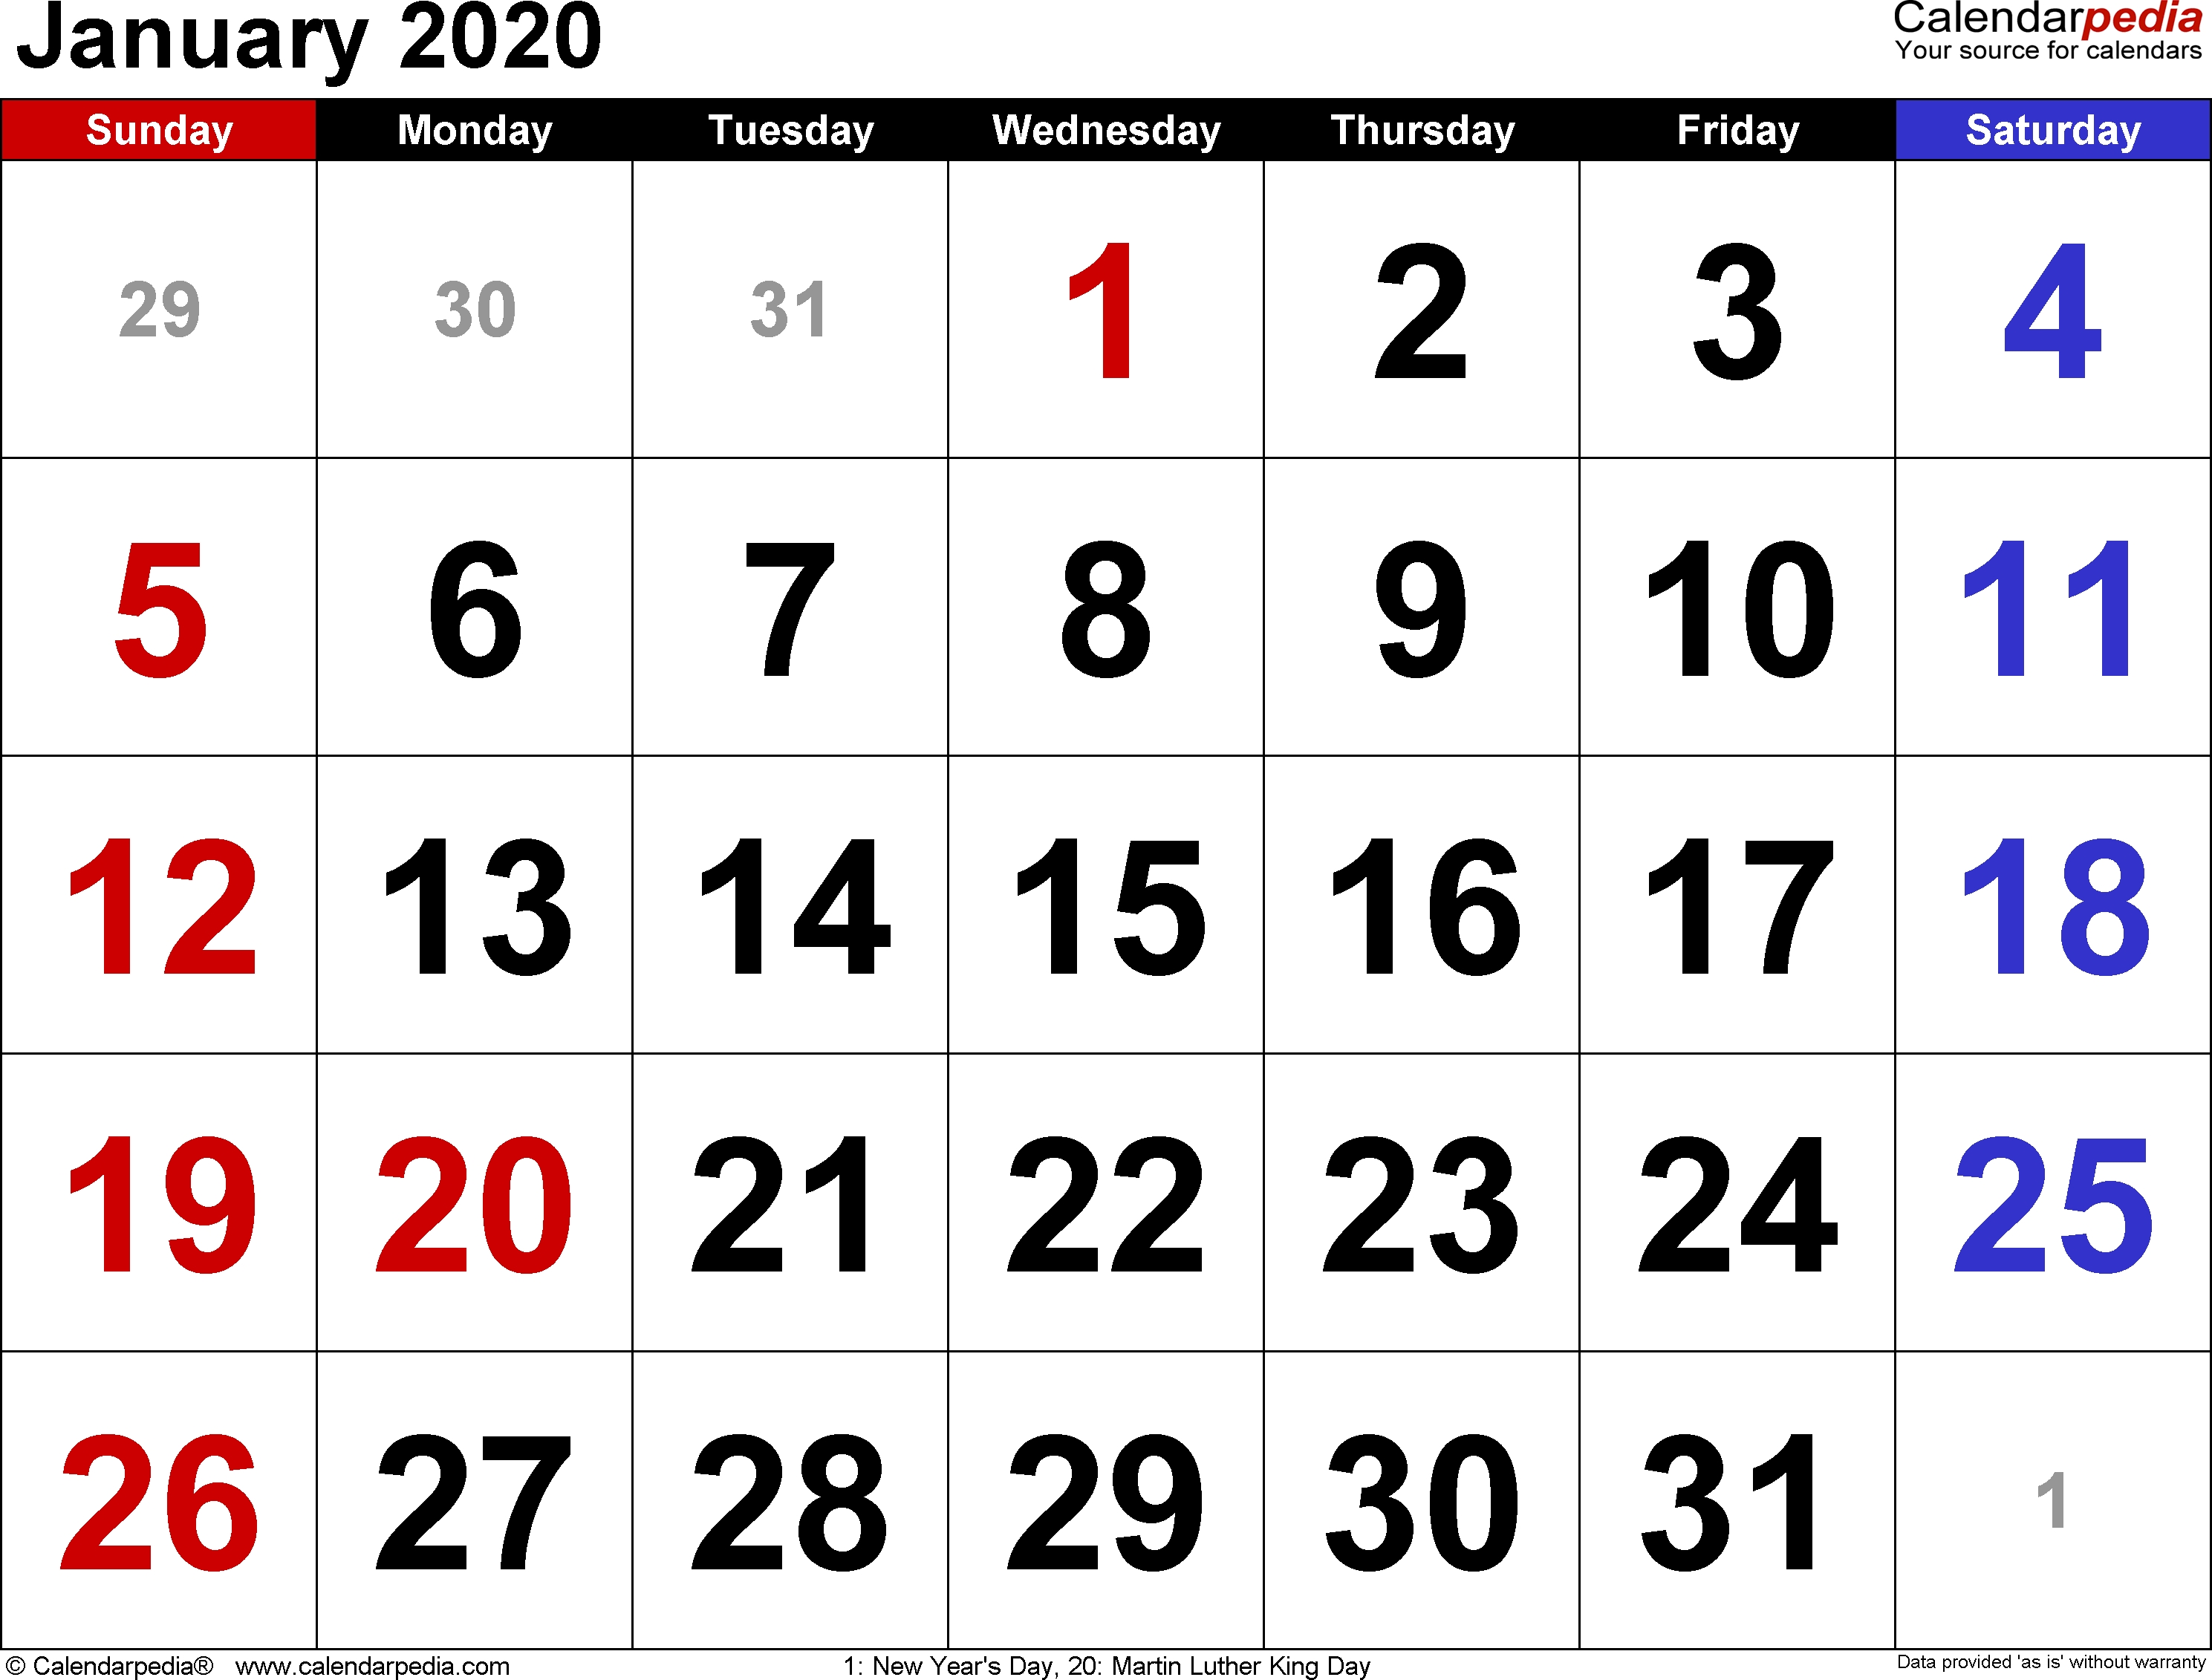 January 2020 Calendars For Word, Excel & Pdf-January 2020 Calendar Month